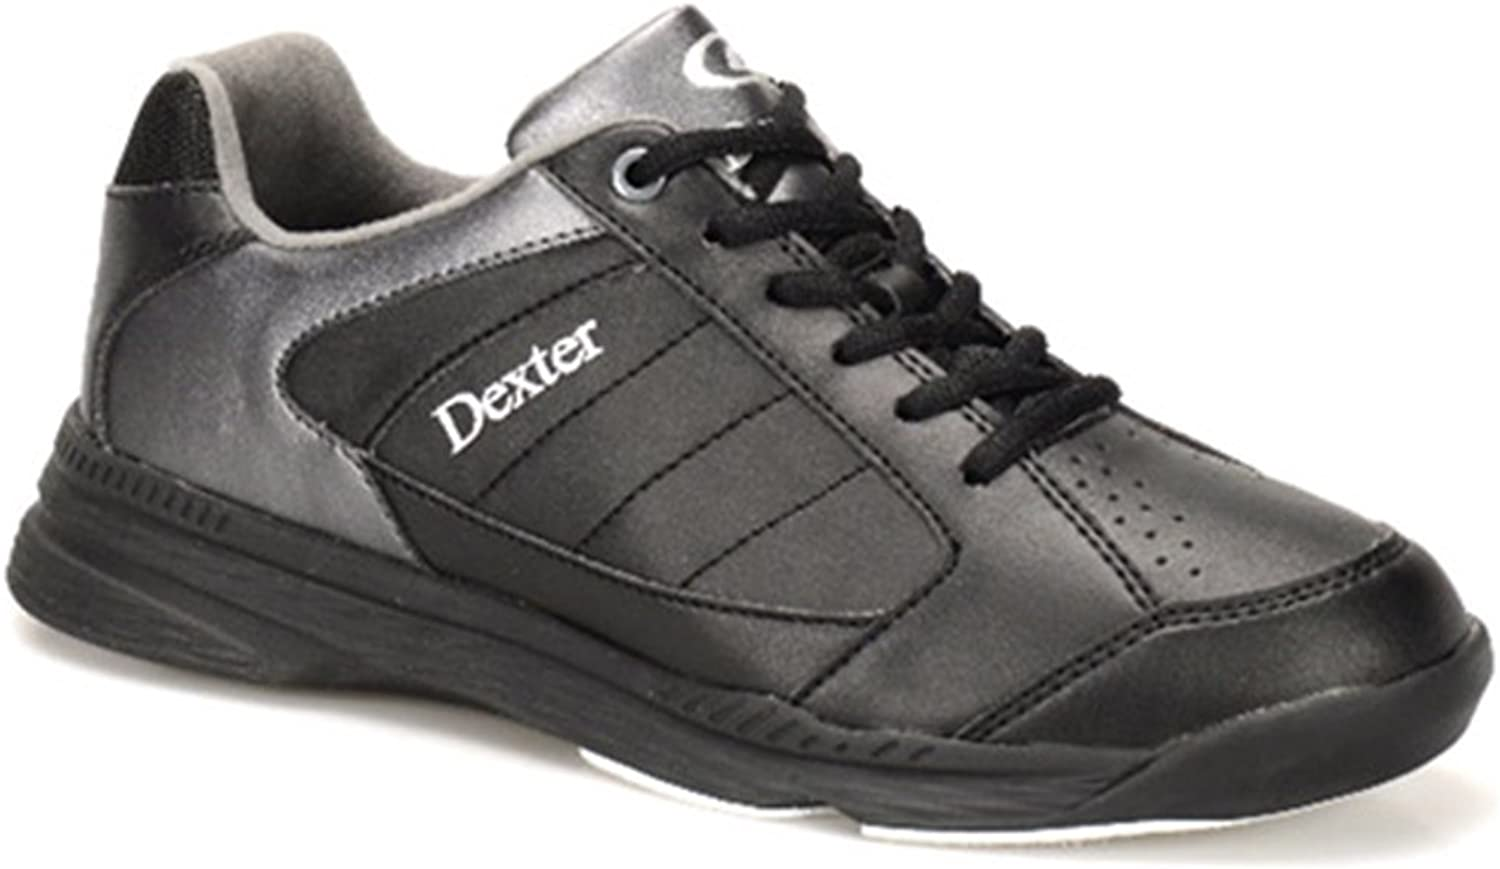 Dexter Mens Ricky IV Bowling shoes Wide-White Black